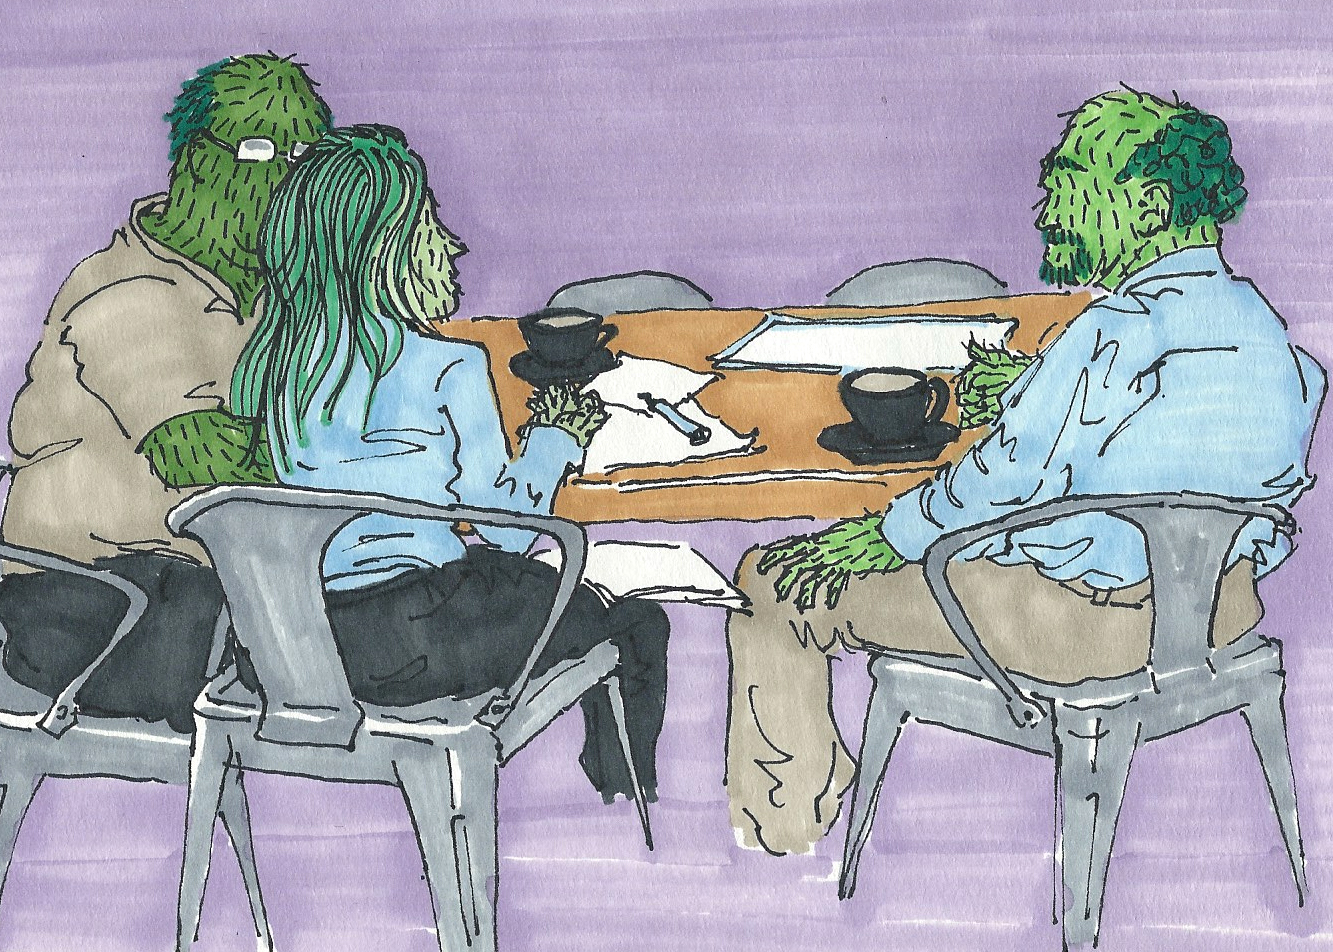 Cactus People in a Meeting